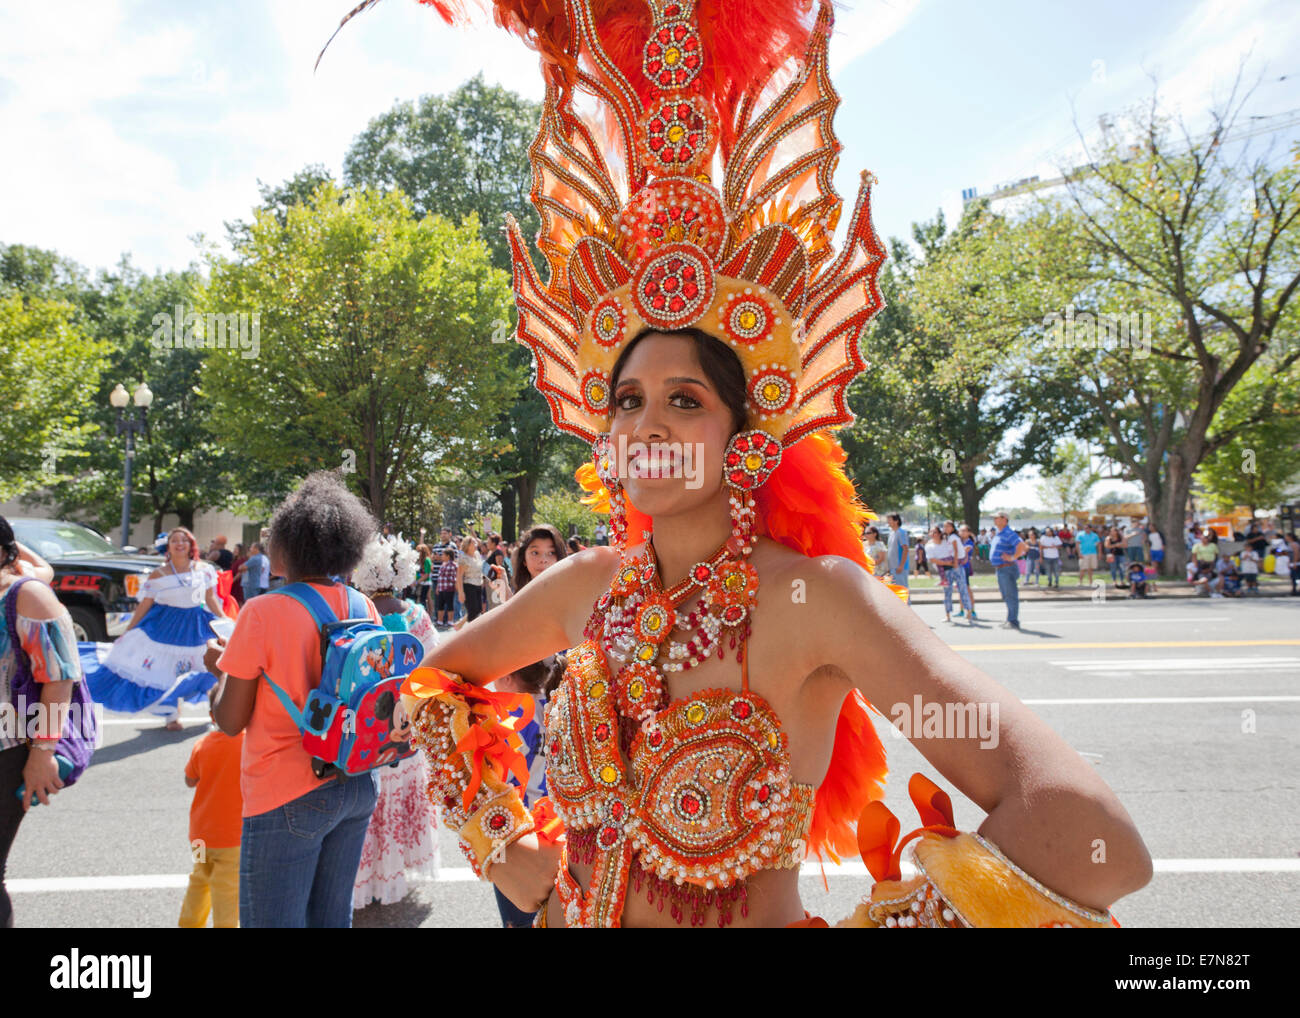 Female Brazilian Carnival Samba dancer in traditional costume - USA  sc 1 st  Alamy & Female Brazilian Carnival Samba dancer in traditional costume - USA ...